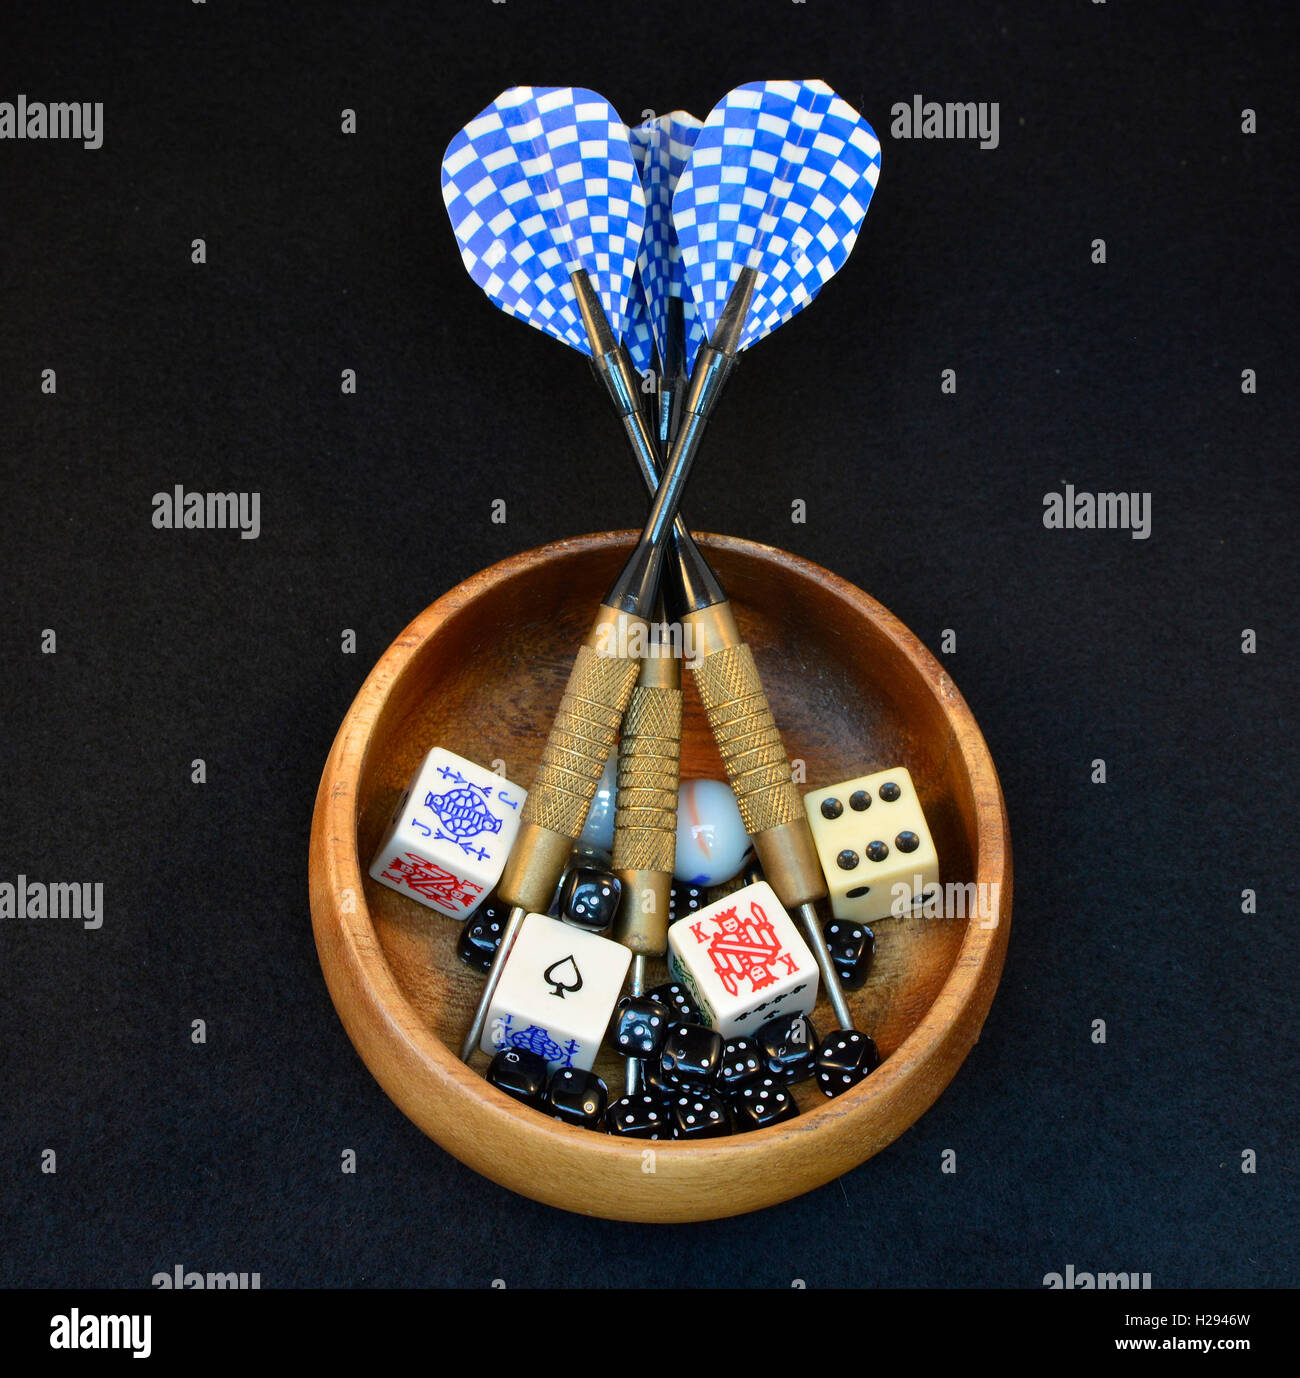 Selection through random methods. Darts, dice, cards and marbles. - Stock Image